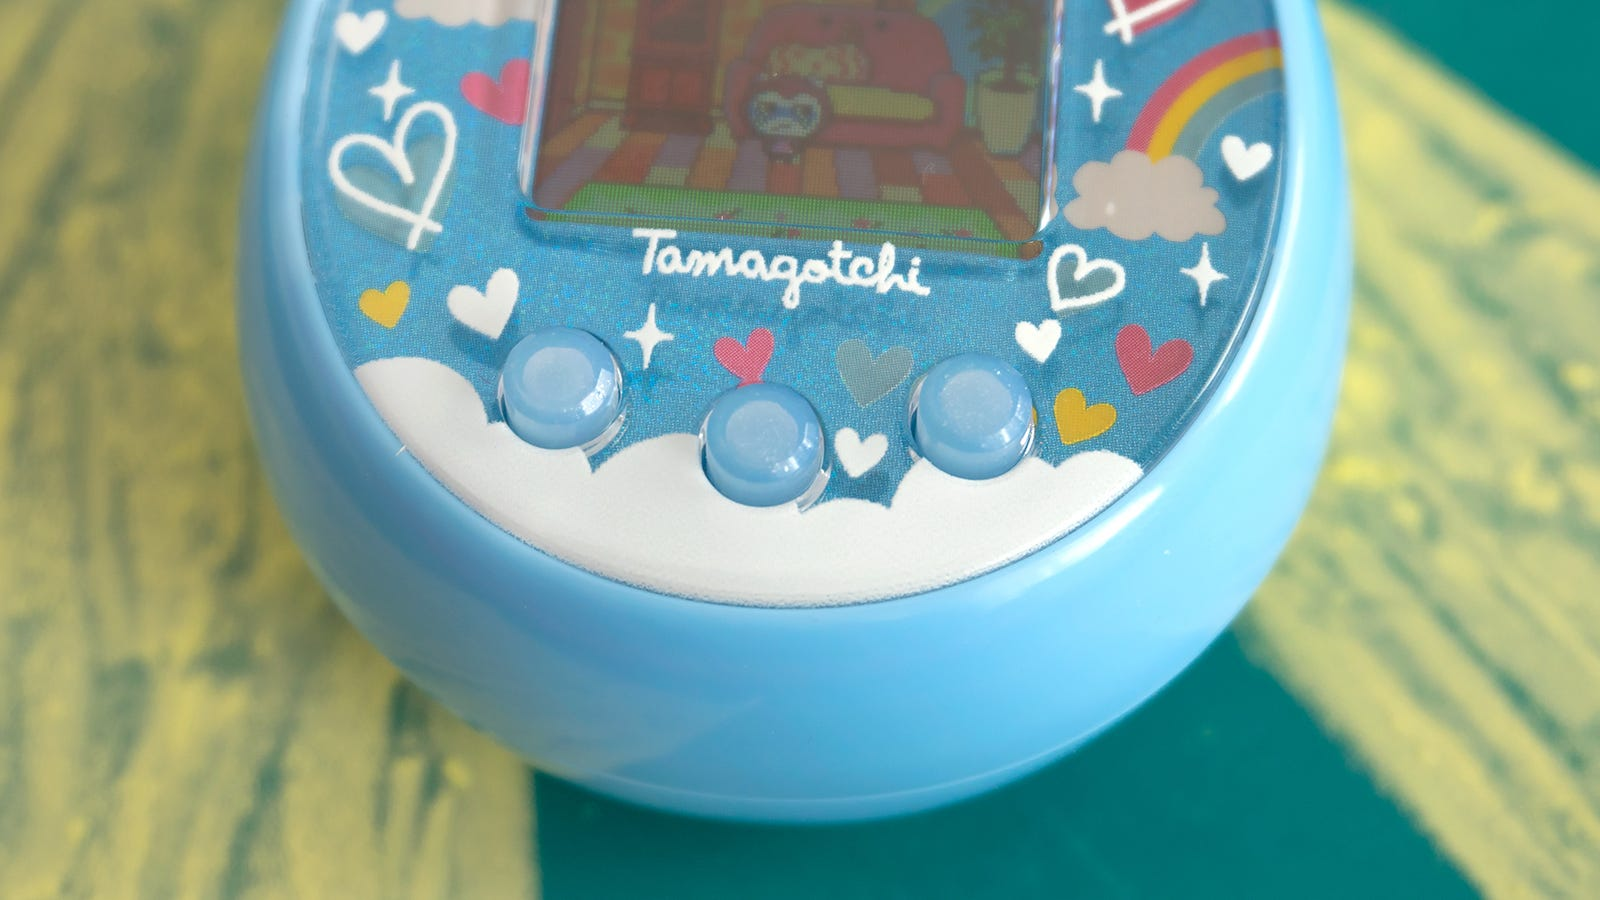 As with almost all the previous iterations of Tamagotchi, interacting with your virtual pet and navigating the menus is all done with three simple buttons, but with all the new features it might be time for an upgrade.